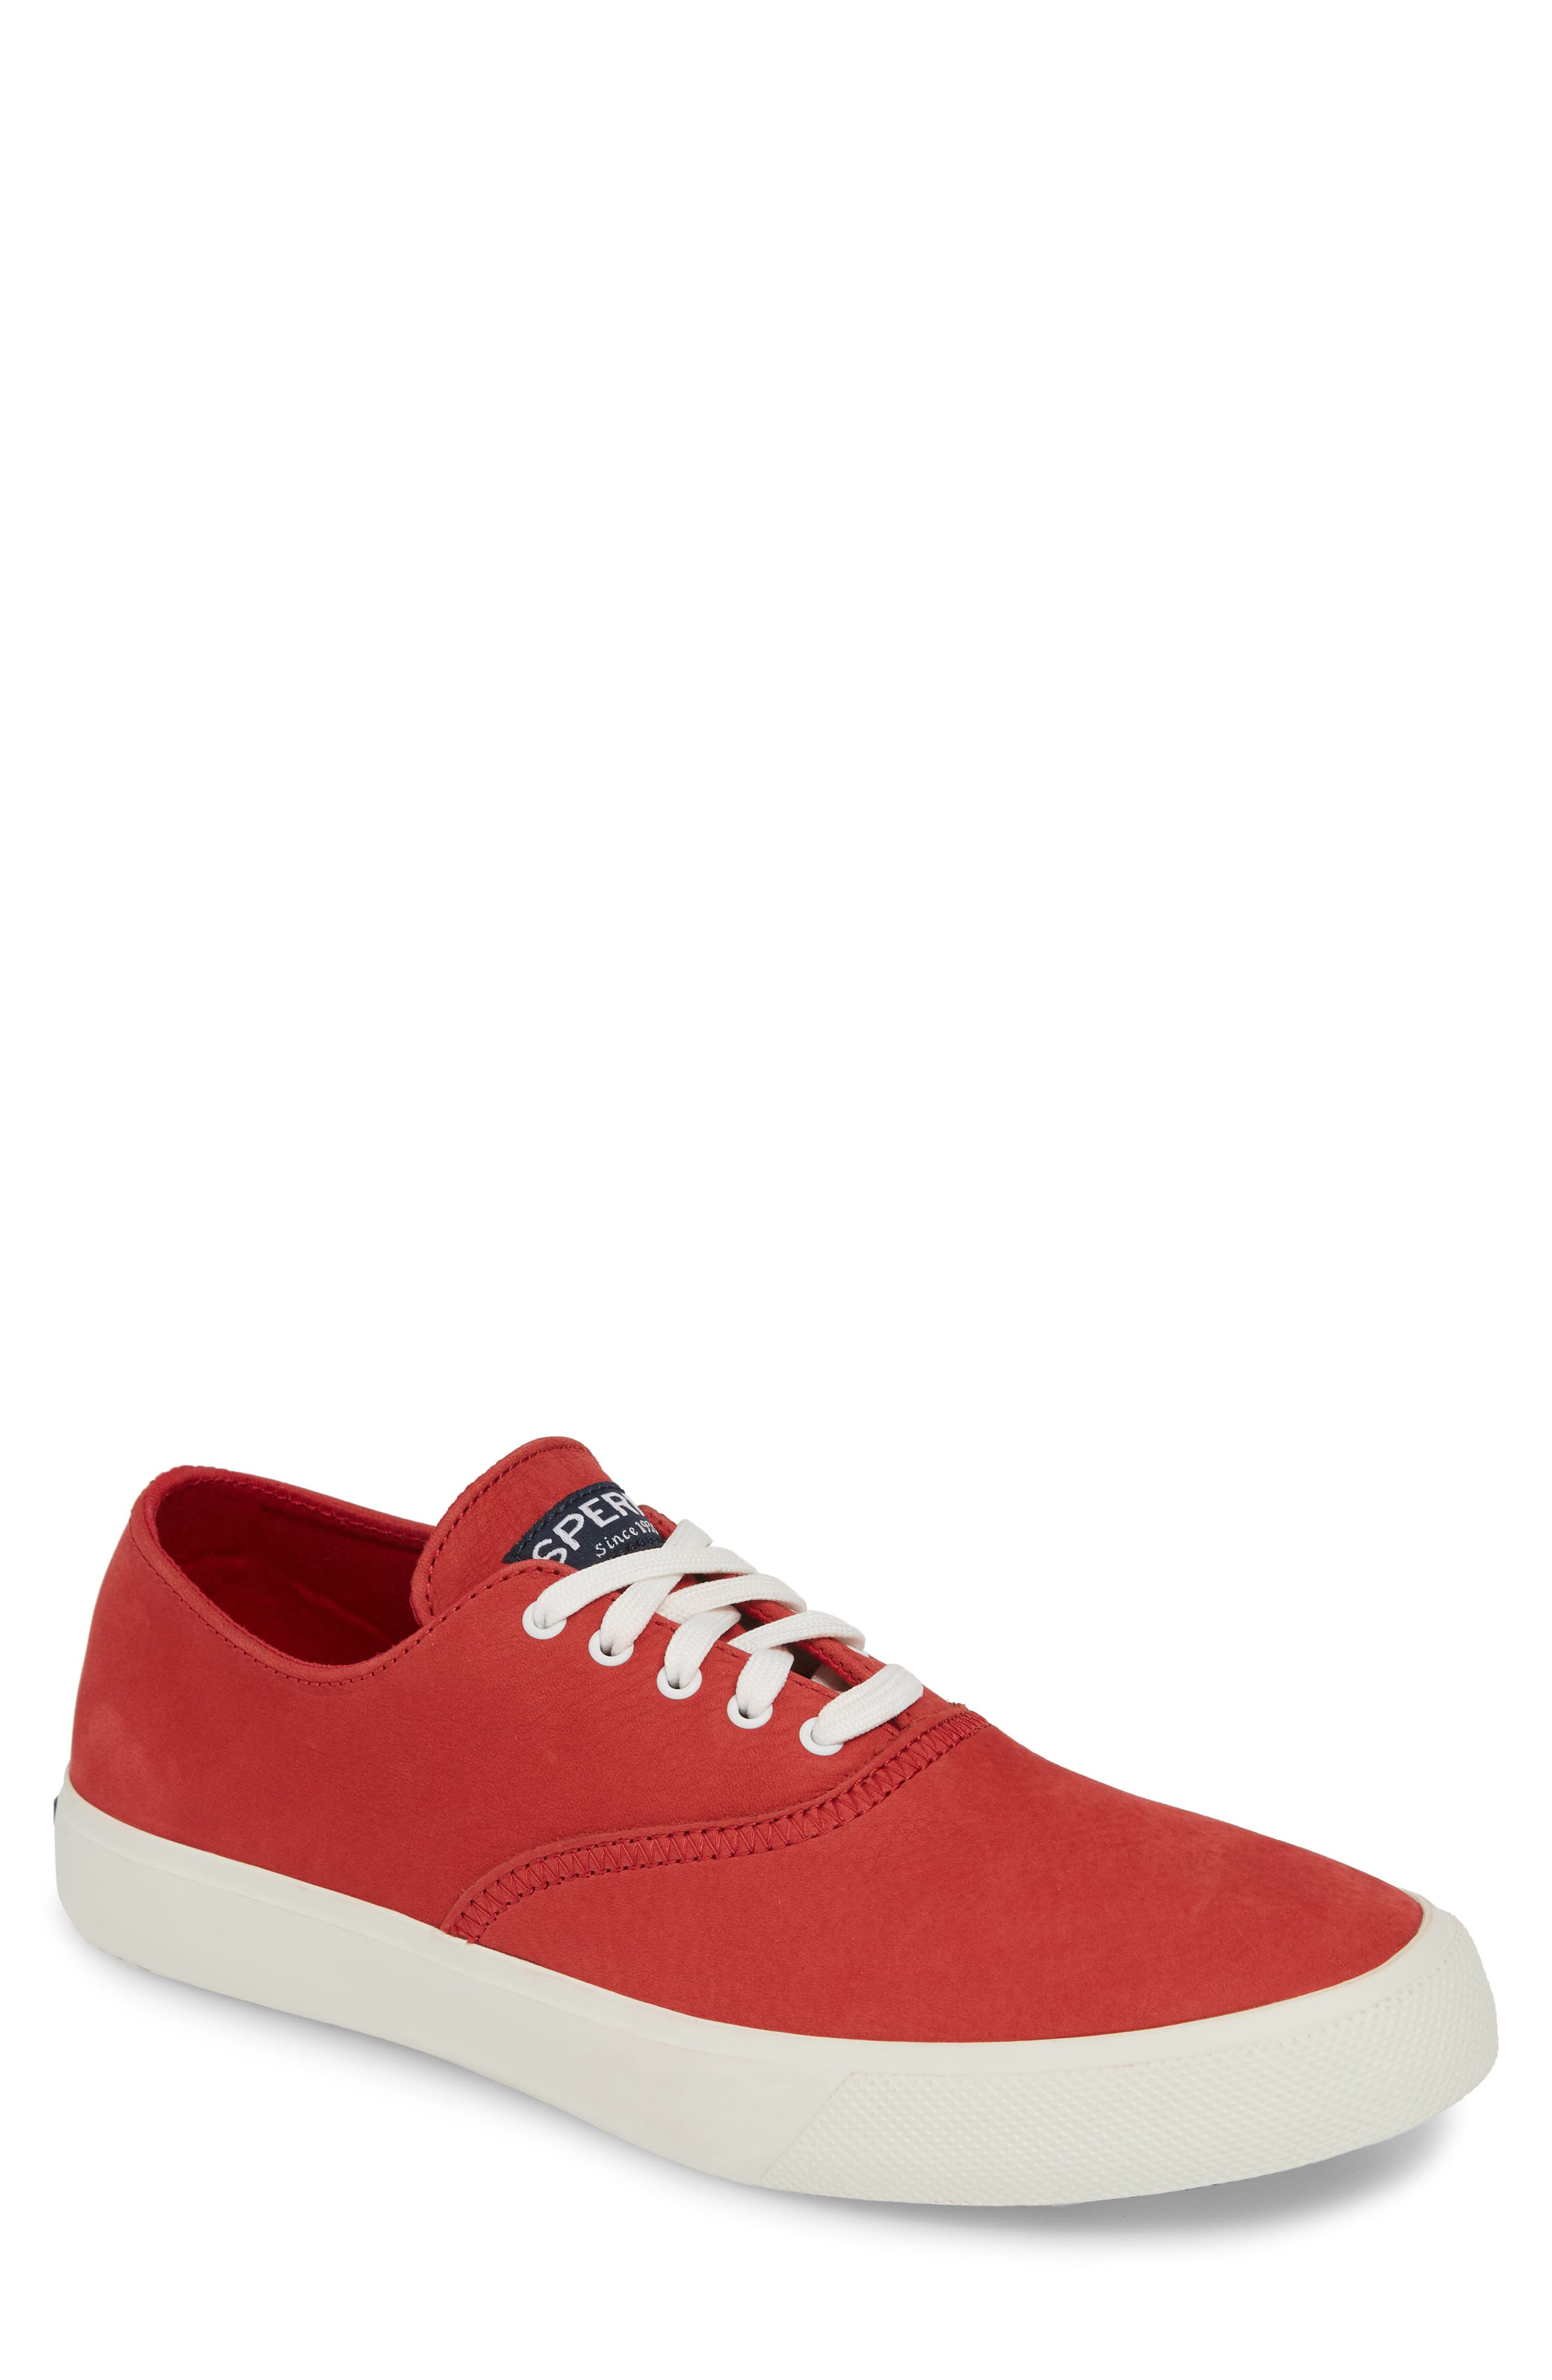 Captains CVO Washable Sneaker, Main, color, RED LEATHER